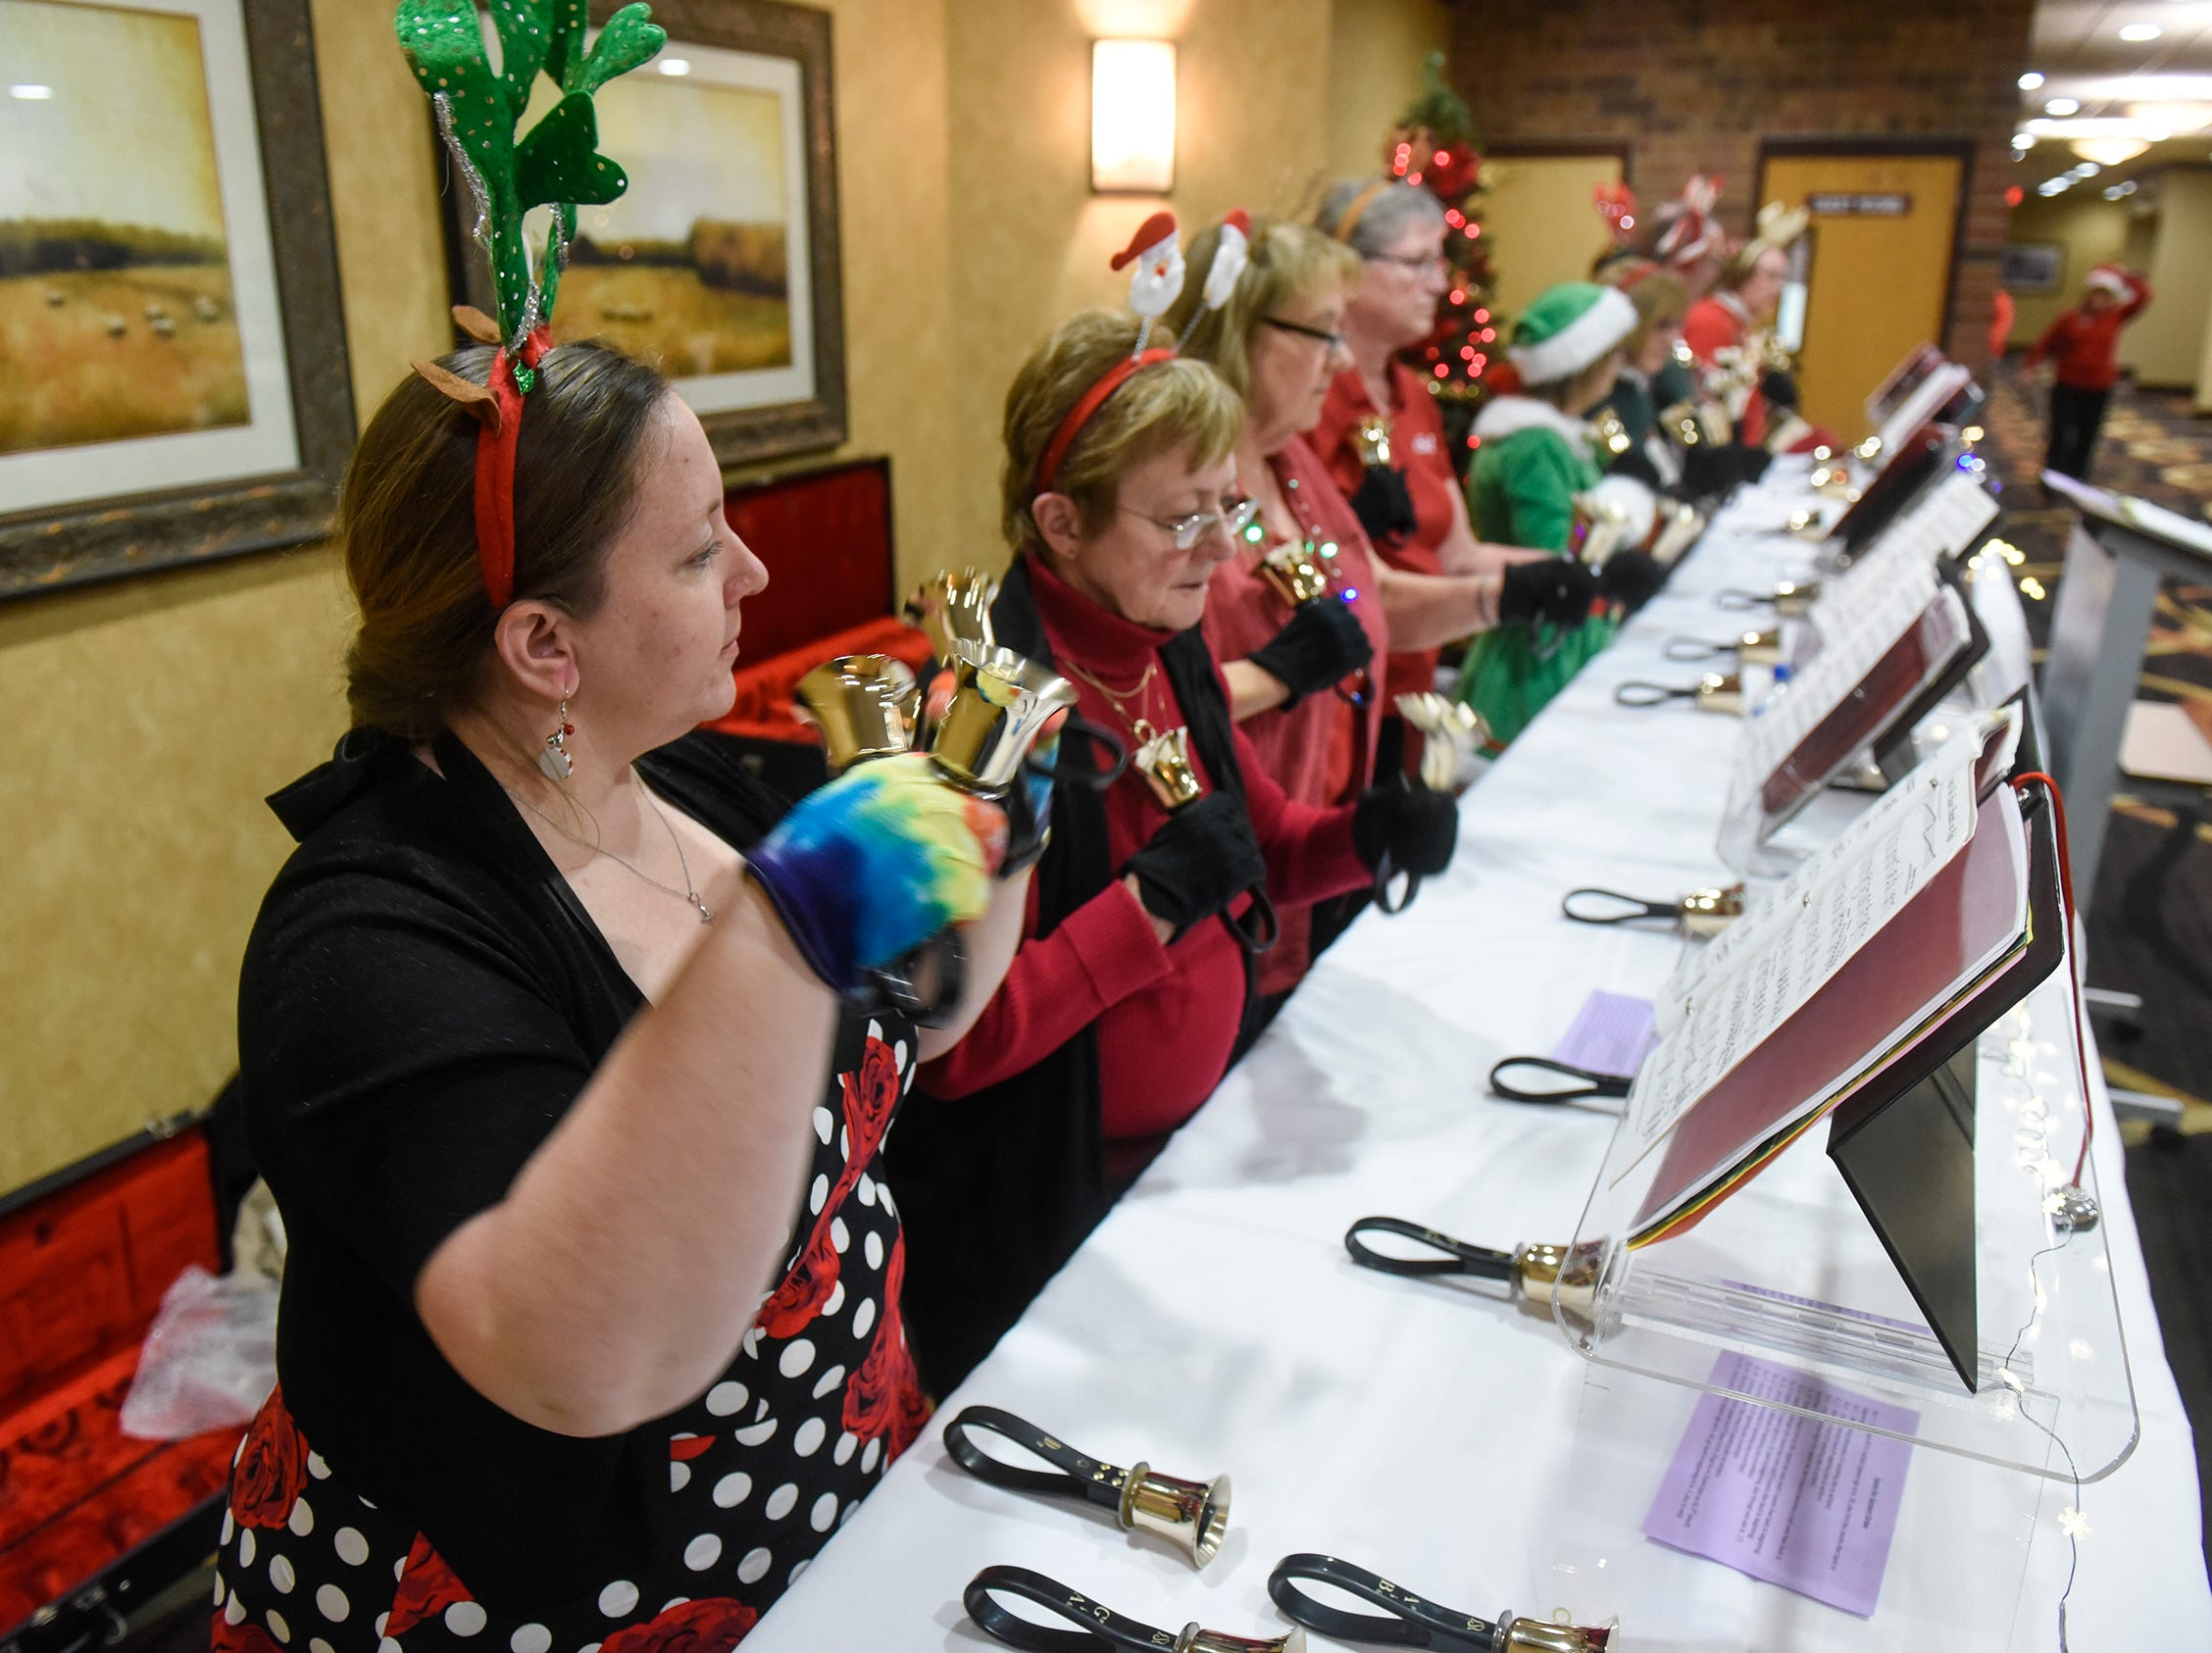 Handbells provide festive music for the Dinner with Santa event Monday, Dec. 17, in St. Cloud.